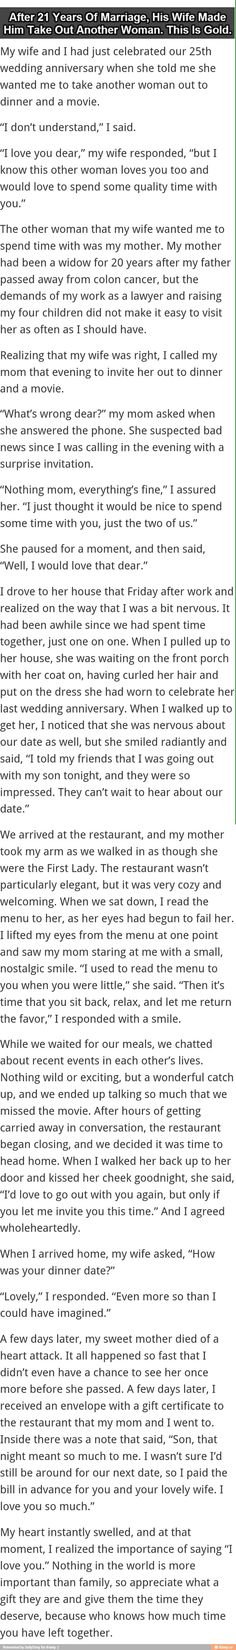 imma cry. it's so sweet, it seems weird at first, but just read it